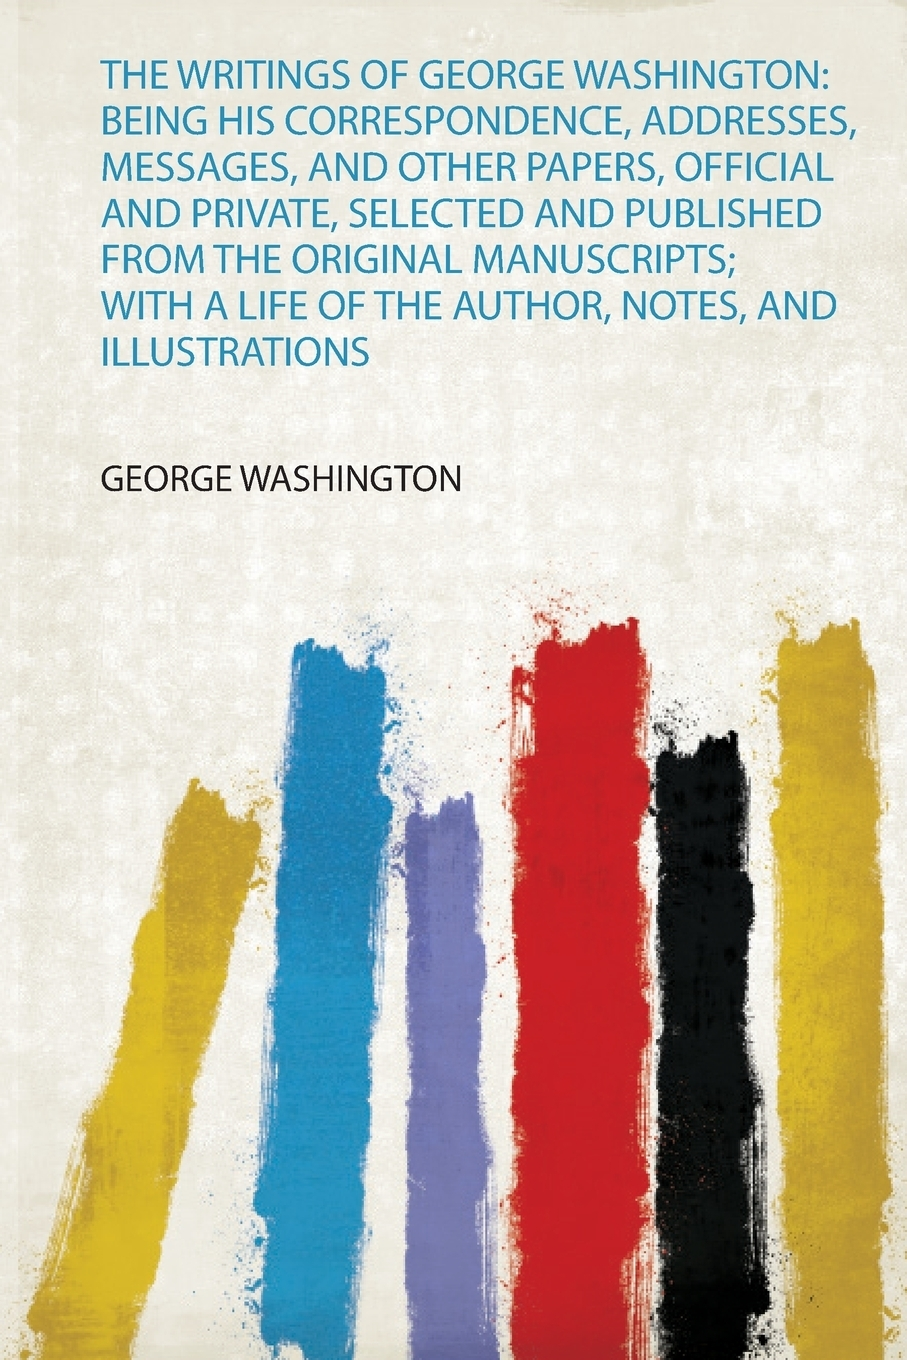 The Writings of George Washington. Being His Correspondence, Addresses, Messages, and Other Papers, Official and Private, Selected and Published from the Original Manuscripts; With a Life of the Author, Notes, and Illustrations elers george memoirs of george elers captain in the 12th regiment of foot 1777 1842 to which are added correspondence and other papers with genealogy and notes